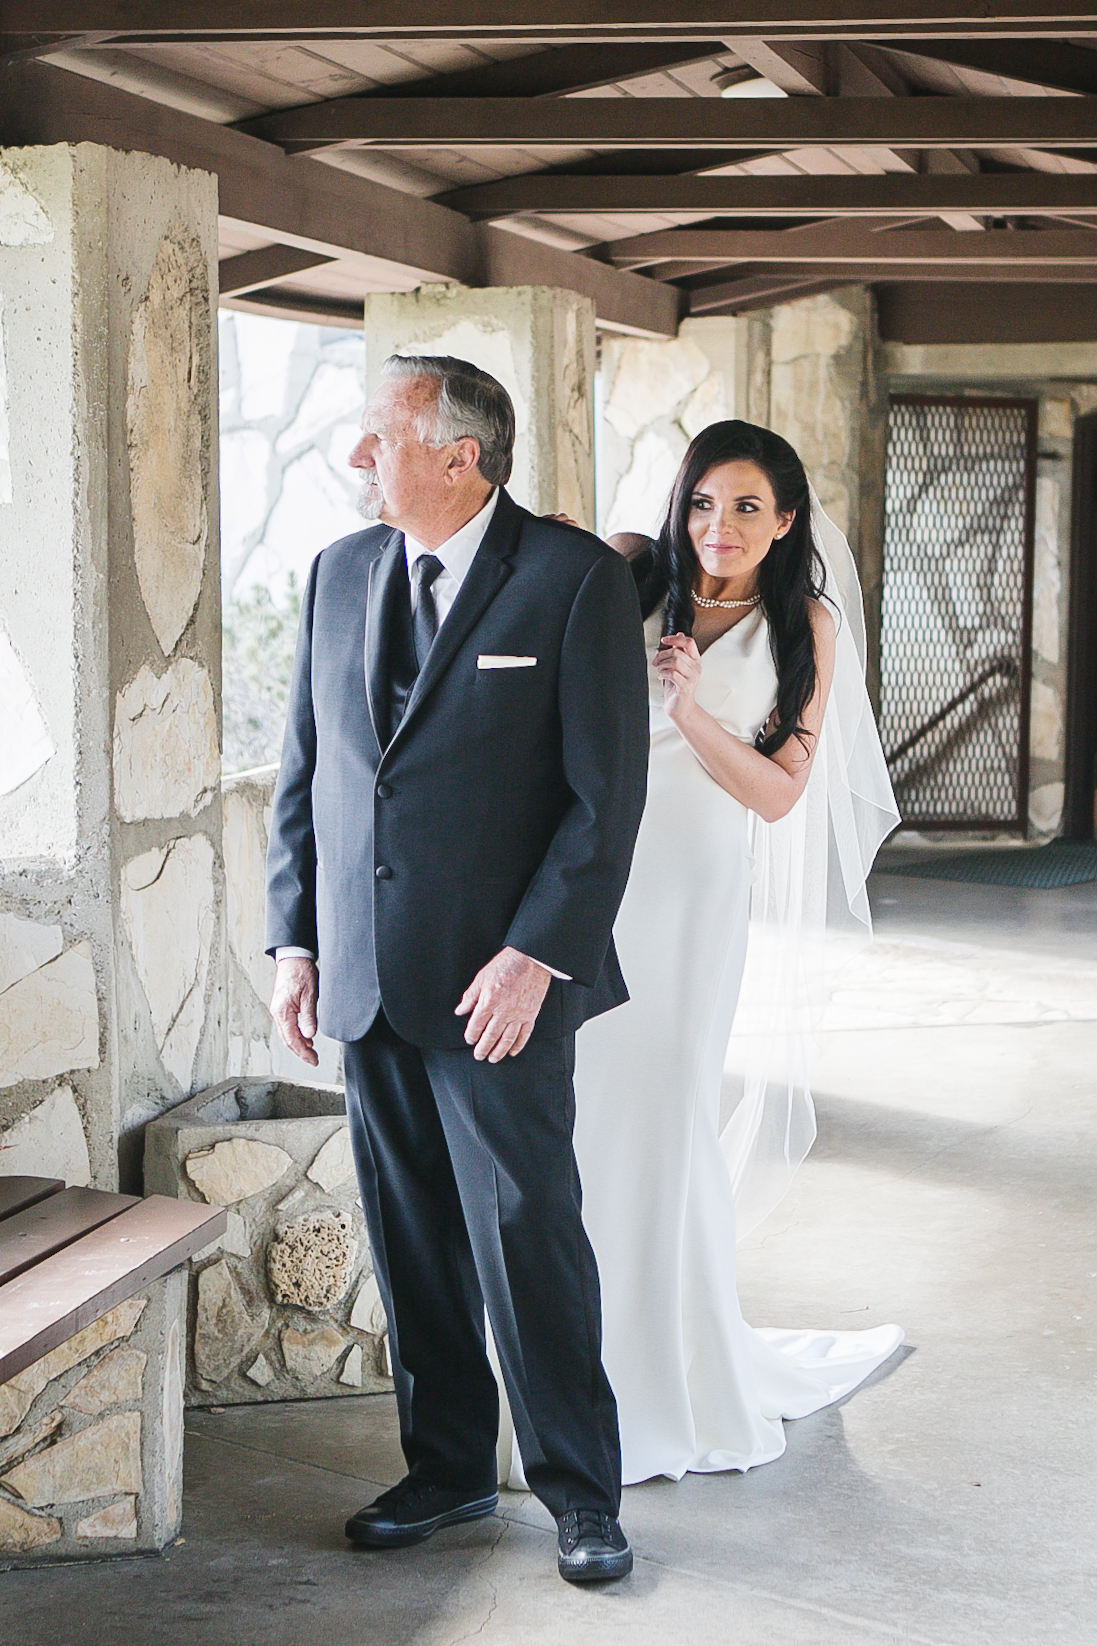 Stephanie wanted to do a 'First-Look' with her pops and it was an emotional moment to shoot. The power of love between father-daughter was evident.